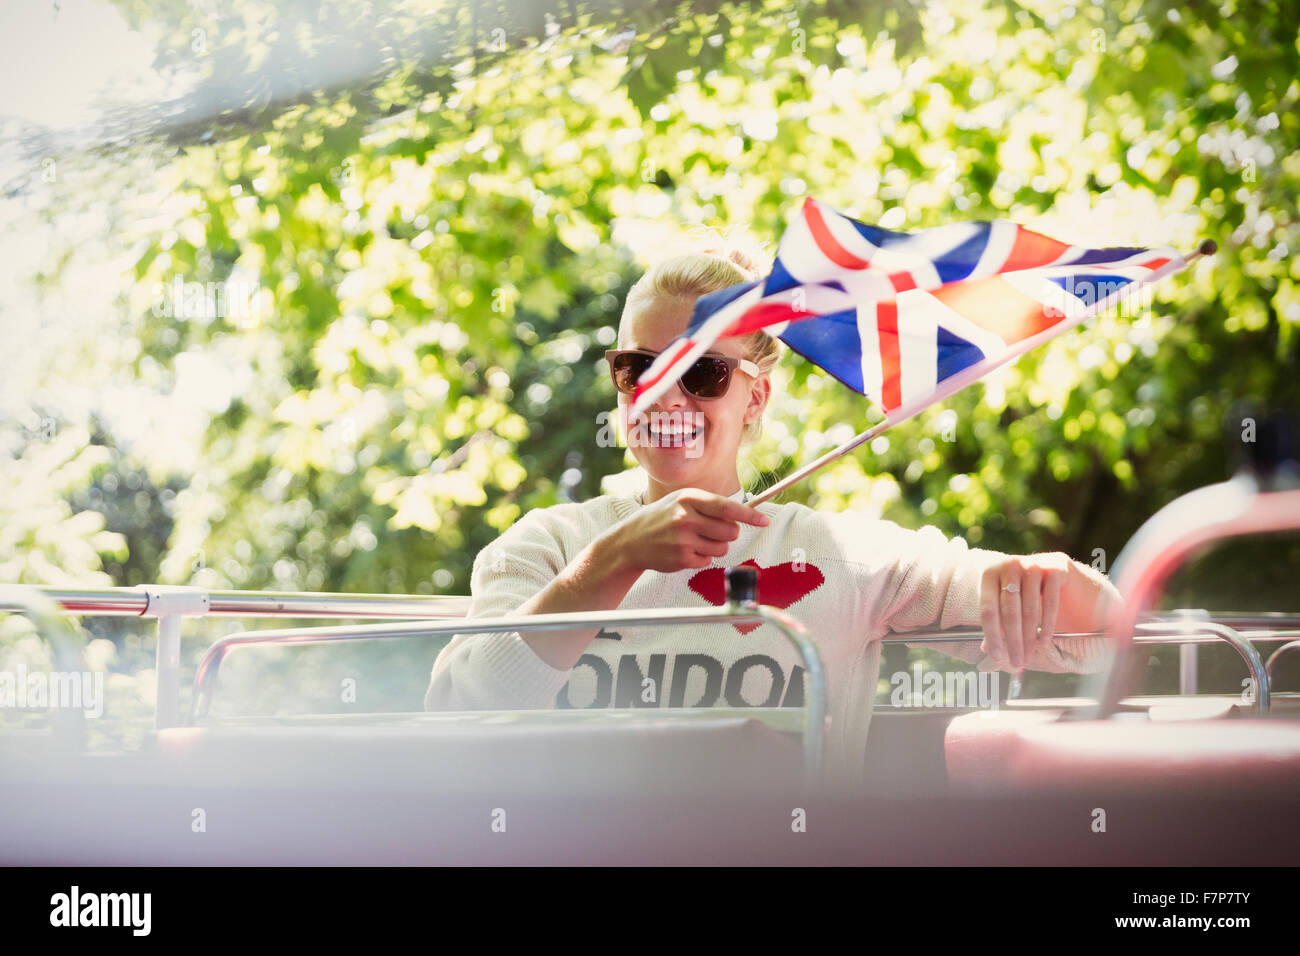 Smiling woman waving British flag on double-decker bus - Stock Image